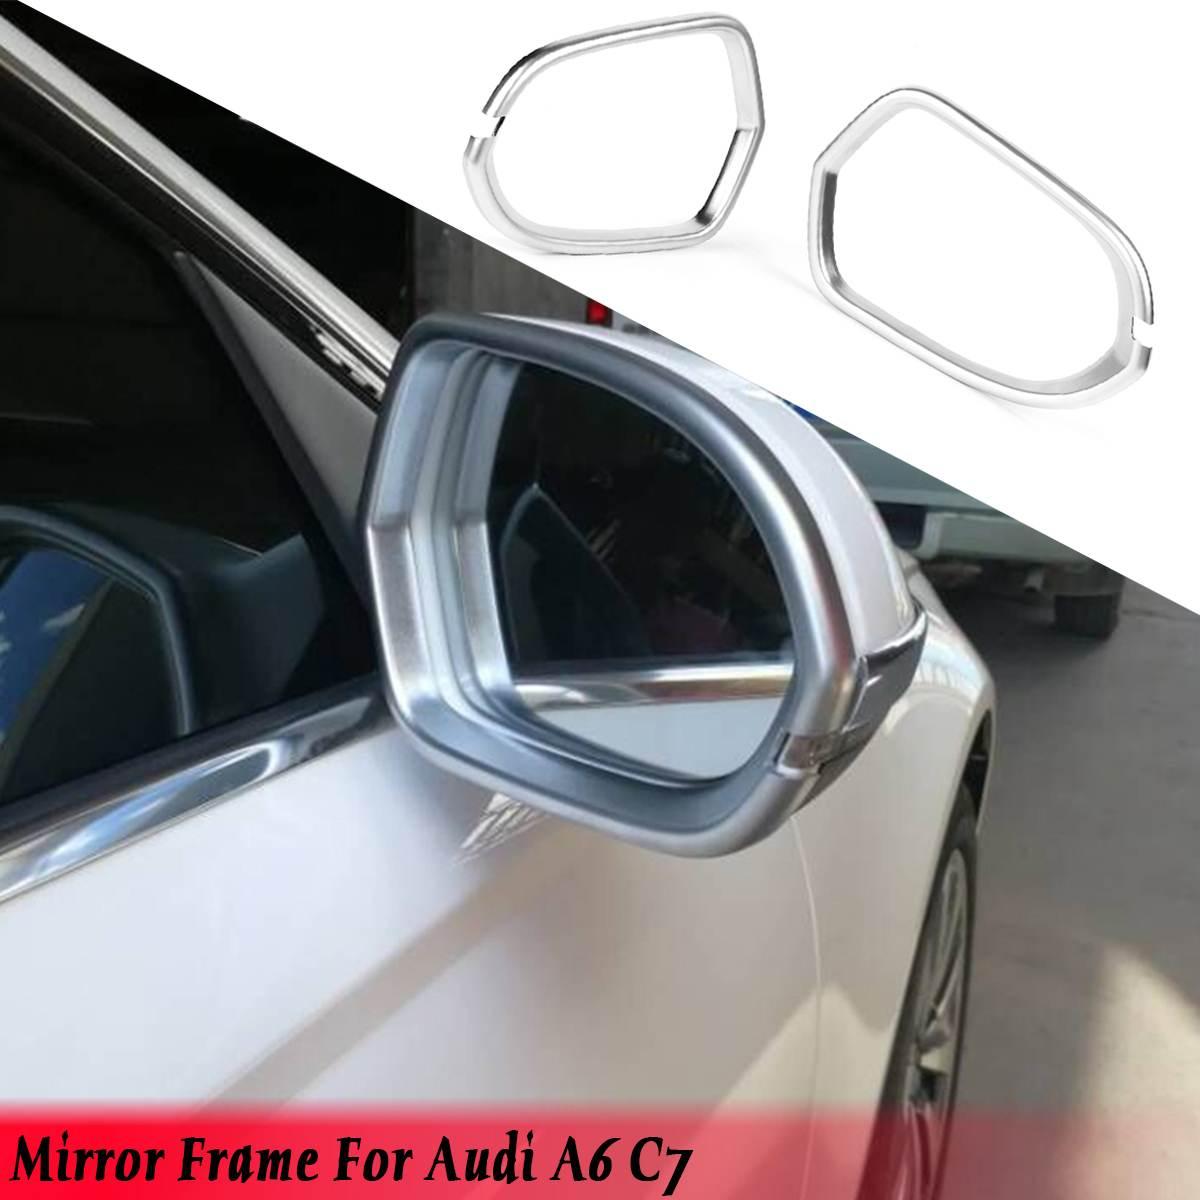 1 Pair Chrome Door ABS Rearview Mirror Decorator Frame Cover Trim For Audi A6 C7 2012 2013 2014 2015 2016 2017 Cover Sticker1 Pair Chrome Door ABS Rearview Mirror Decorator Frame Cover Trim For Audi A6 C7 2012 2013 2014 2015 2016 2017 Cover Sticker